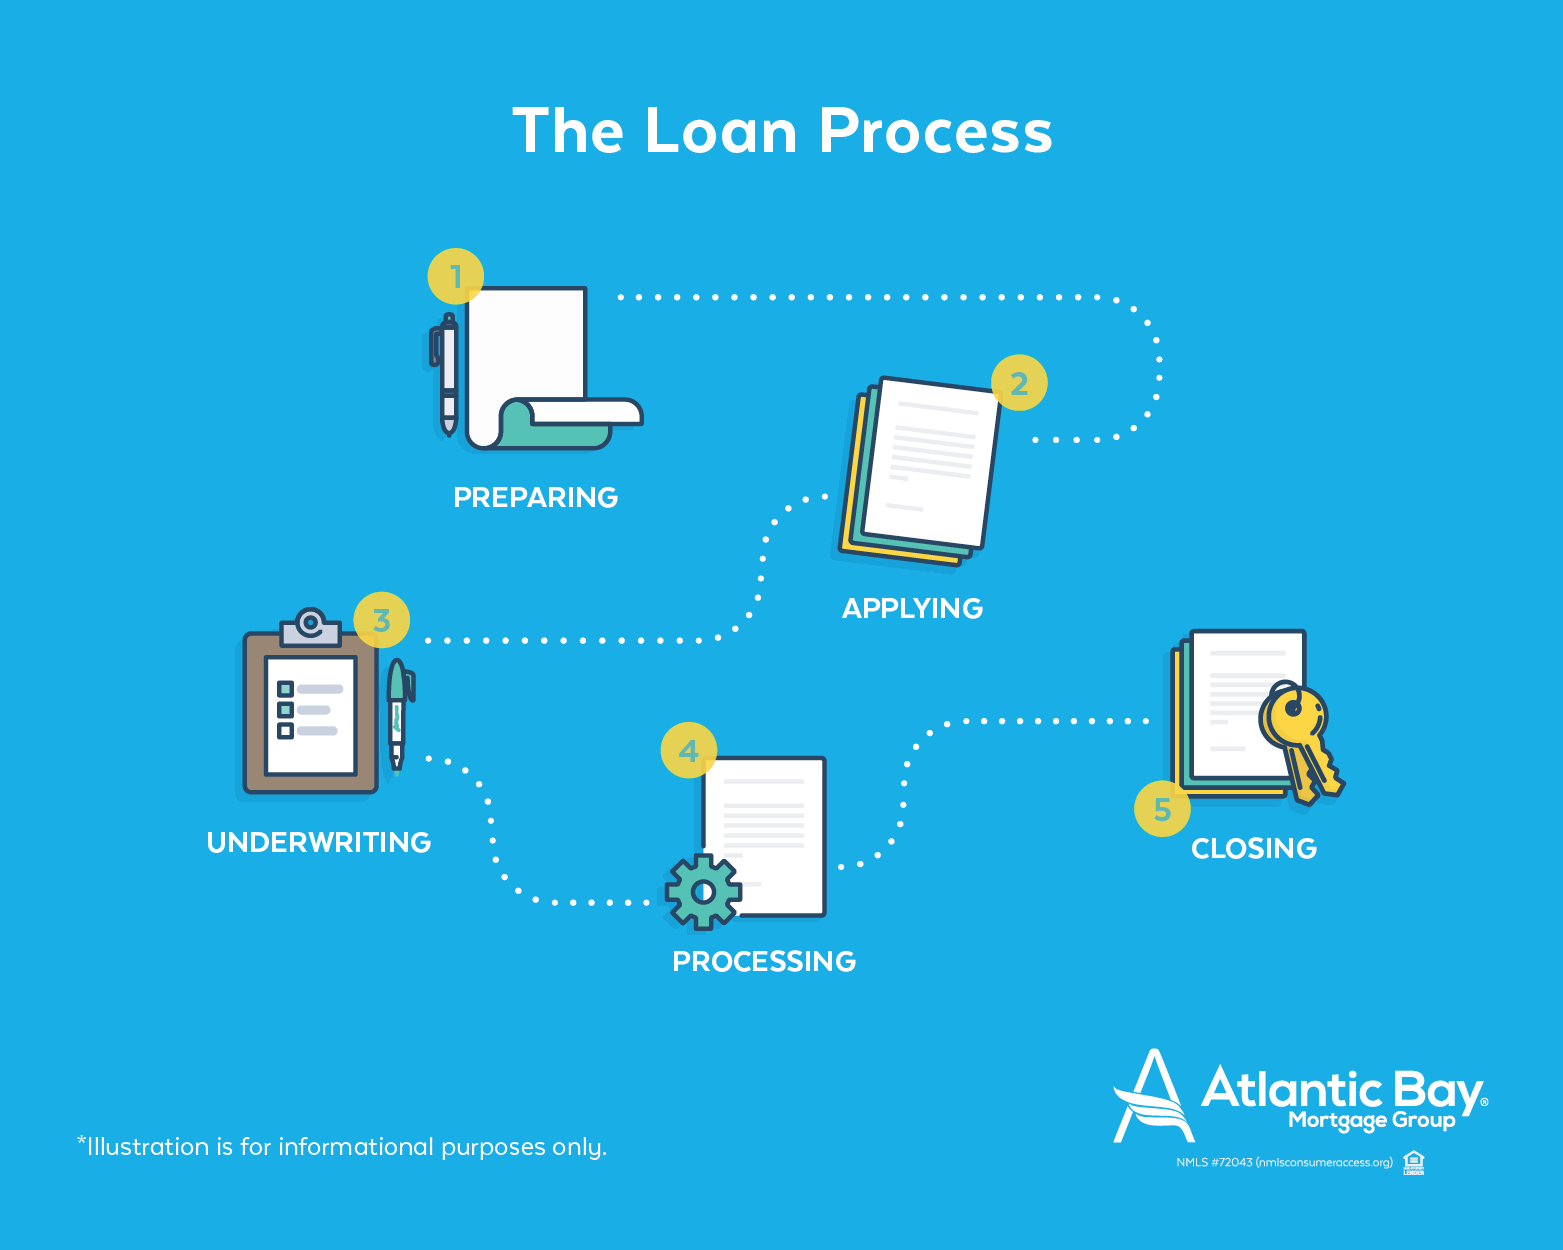 The Loan Process